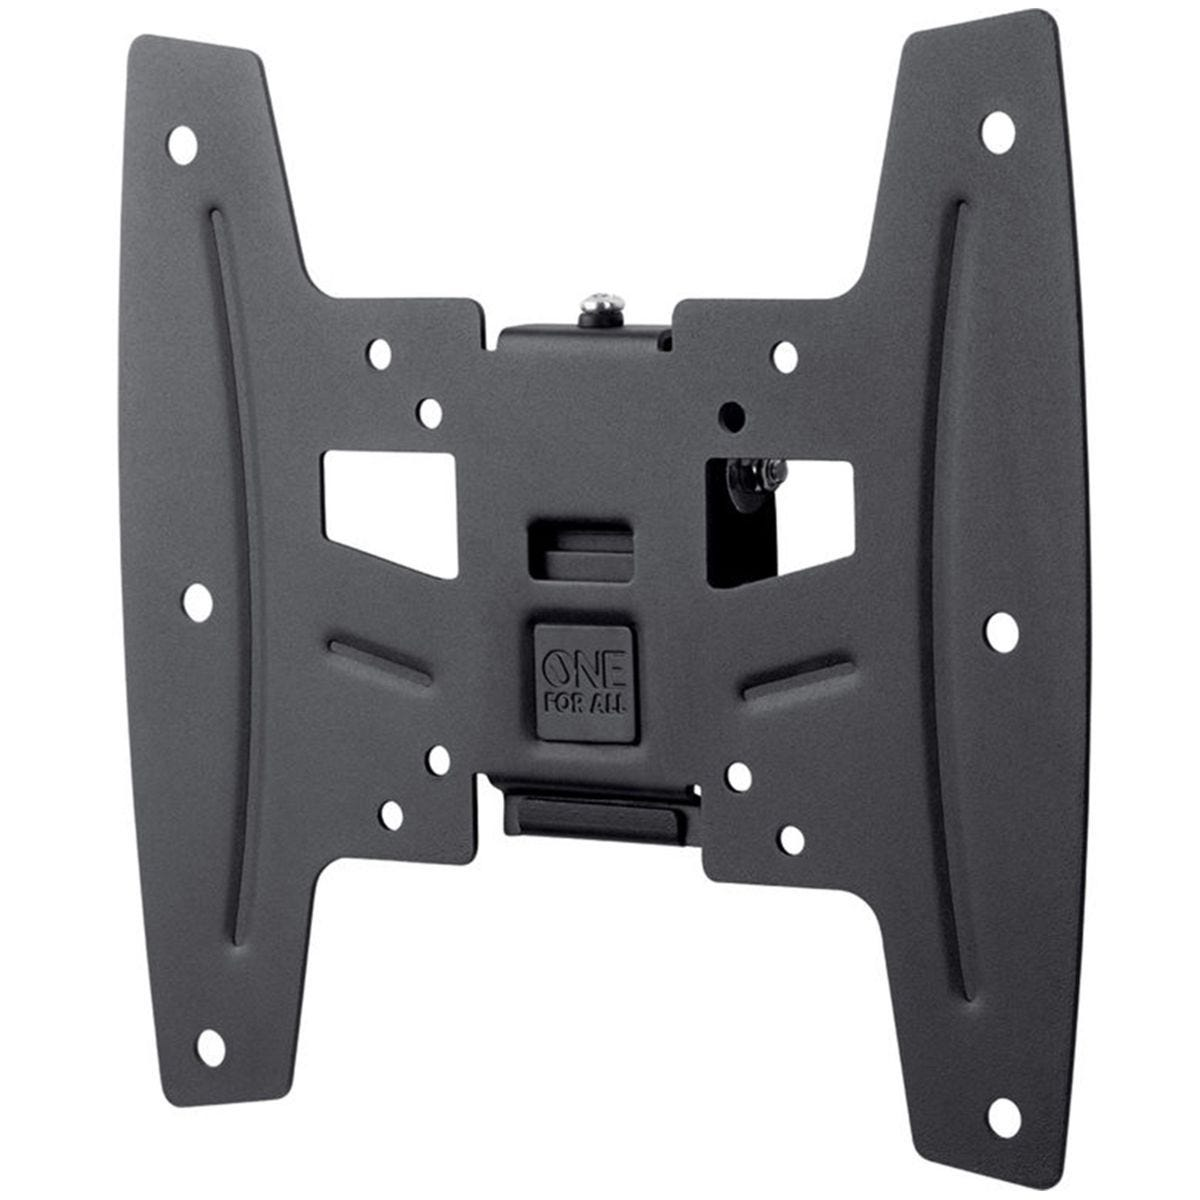 One For All 19-42 inch TV Bracket Tilt Solid Series